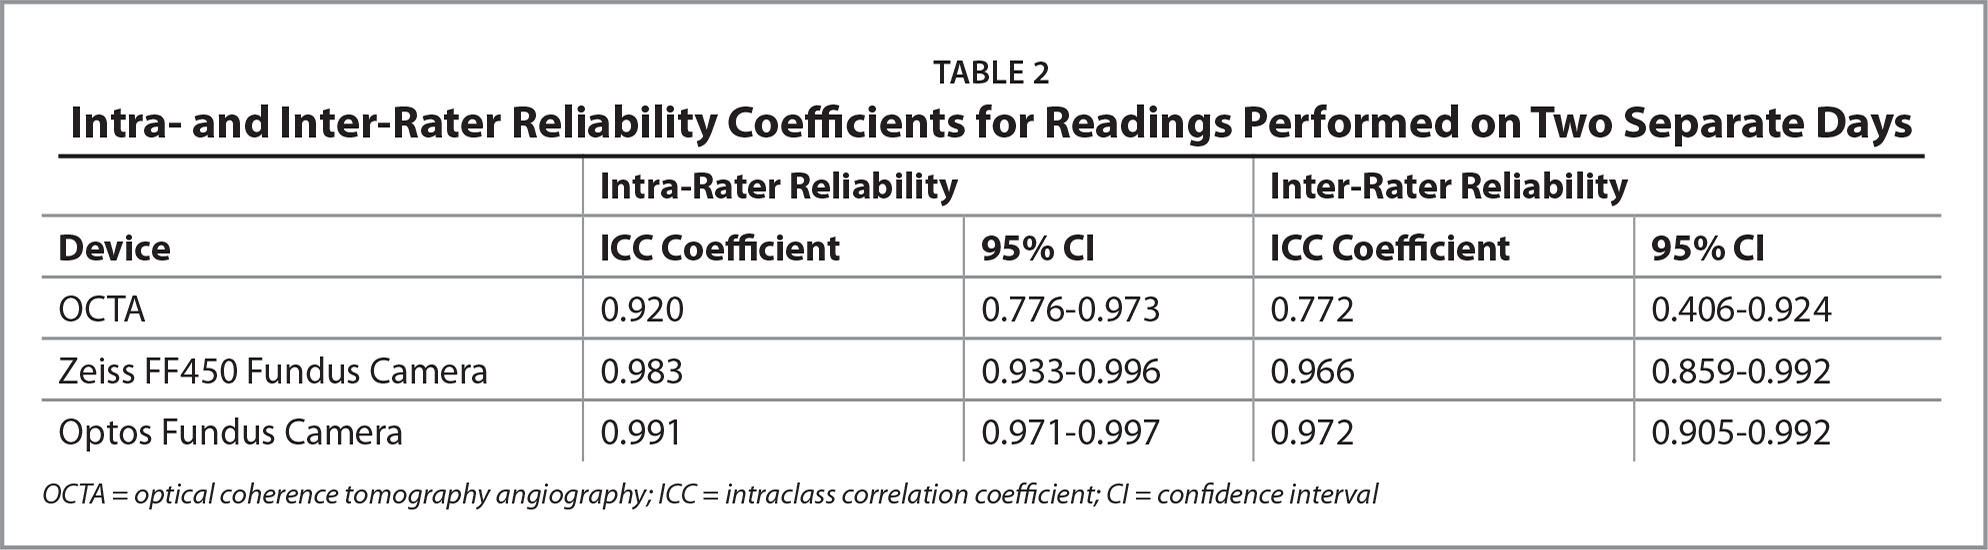 Intra- and Inter-Rater Reliability Coefficients for Readings Performed on Two Separate Days